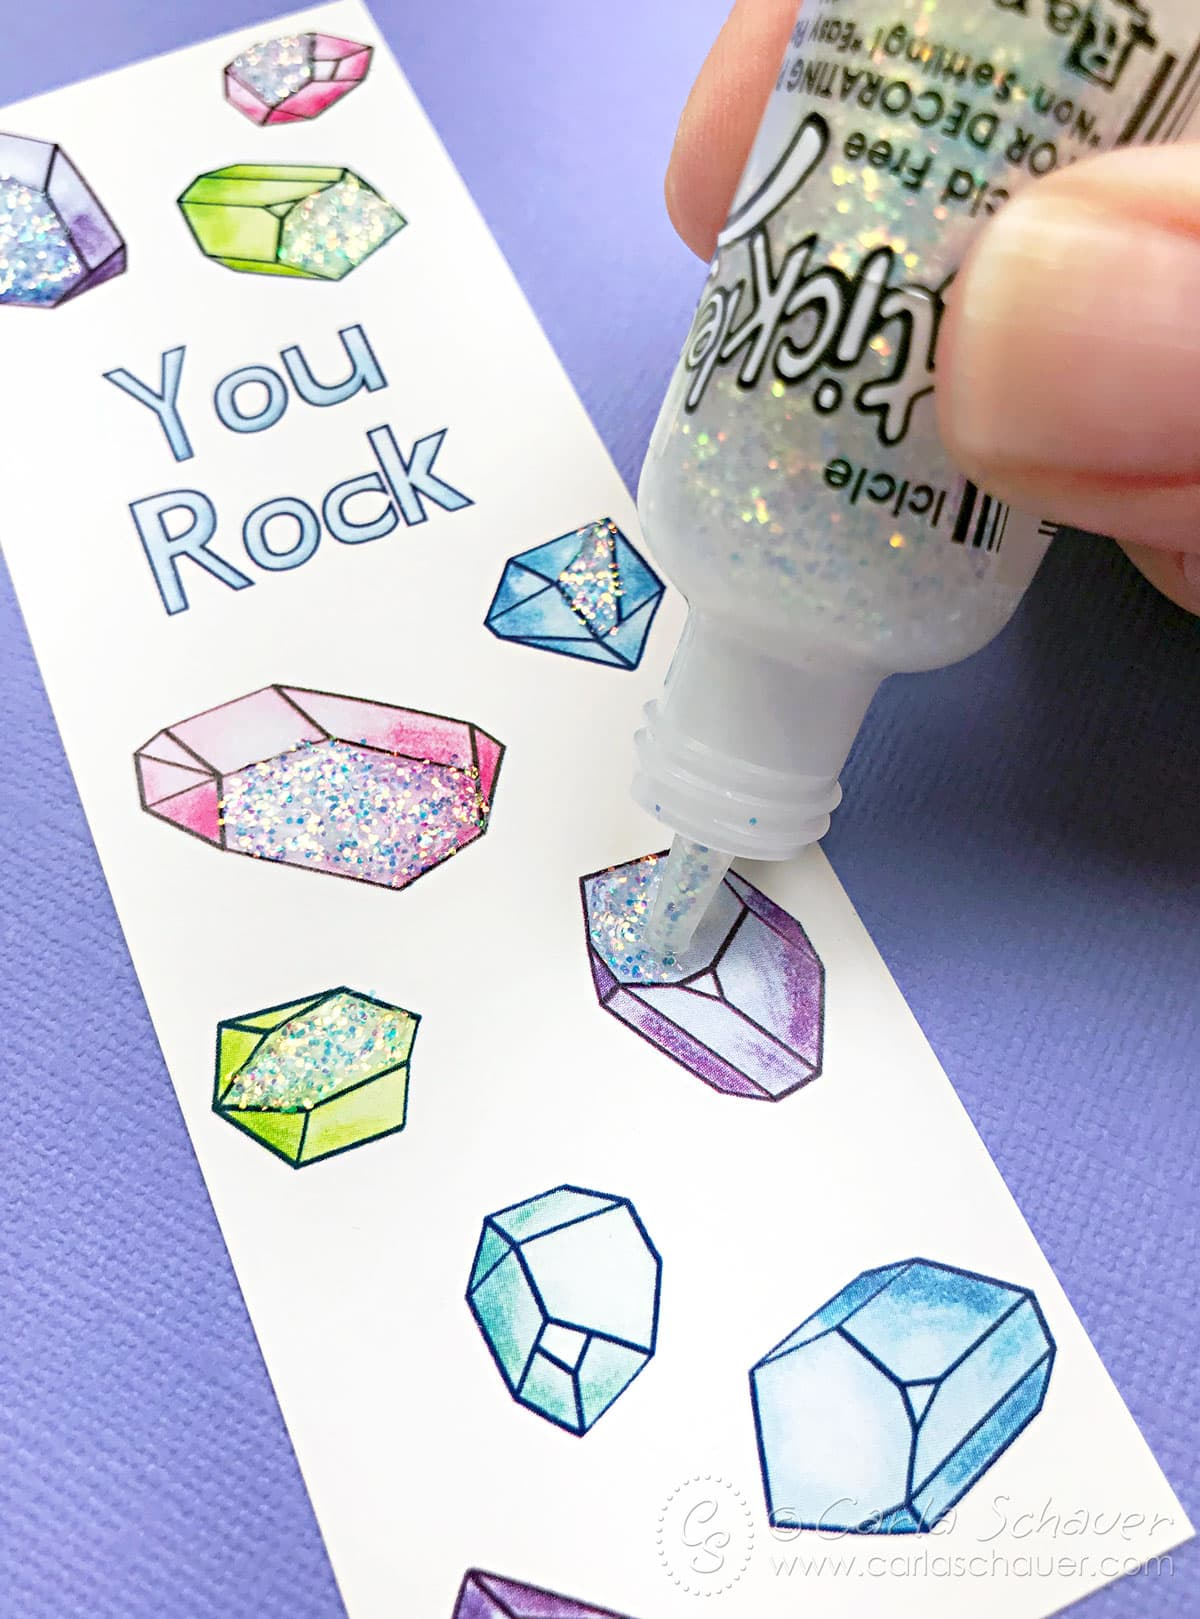 Adding glitter glue to crystal patterned bookmark.